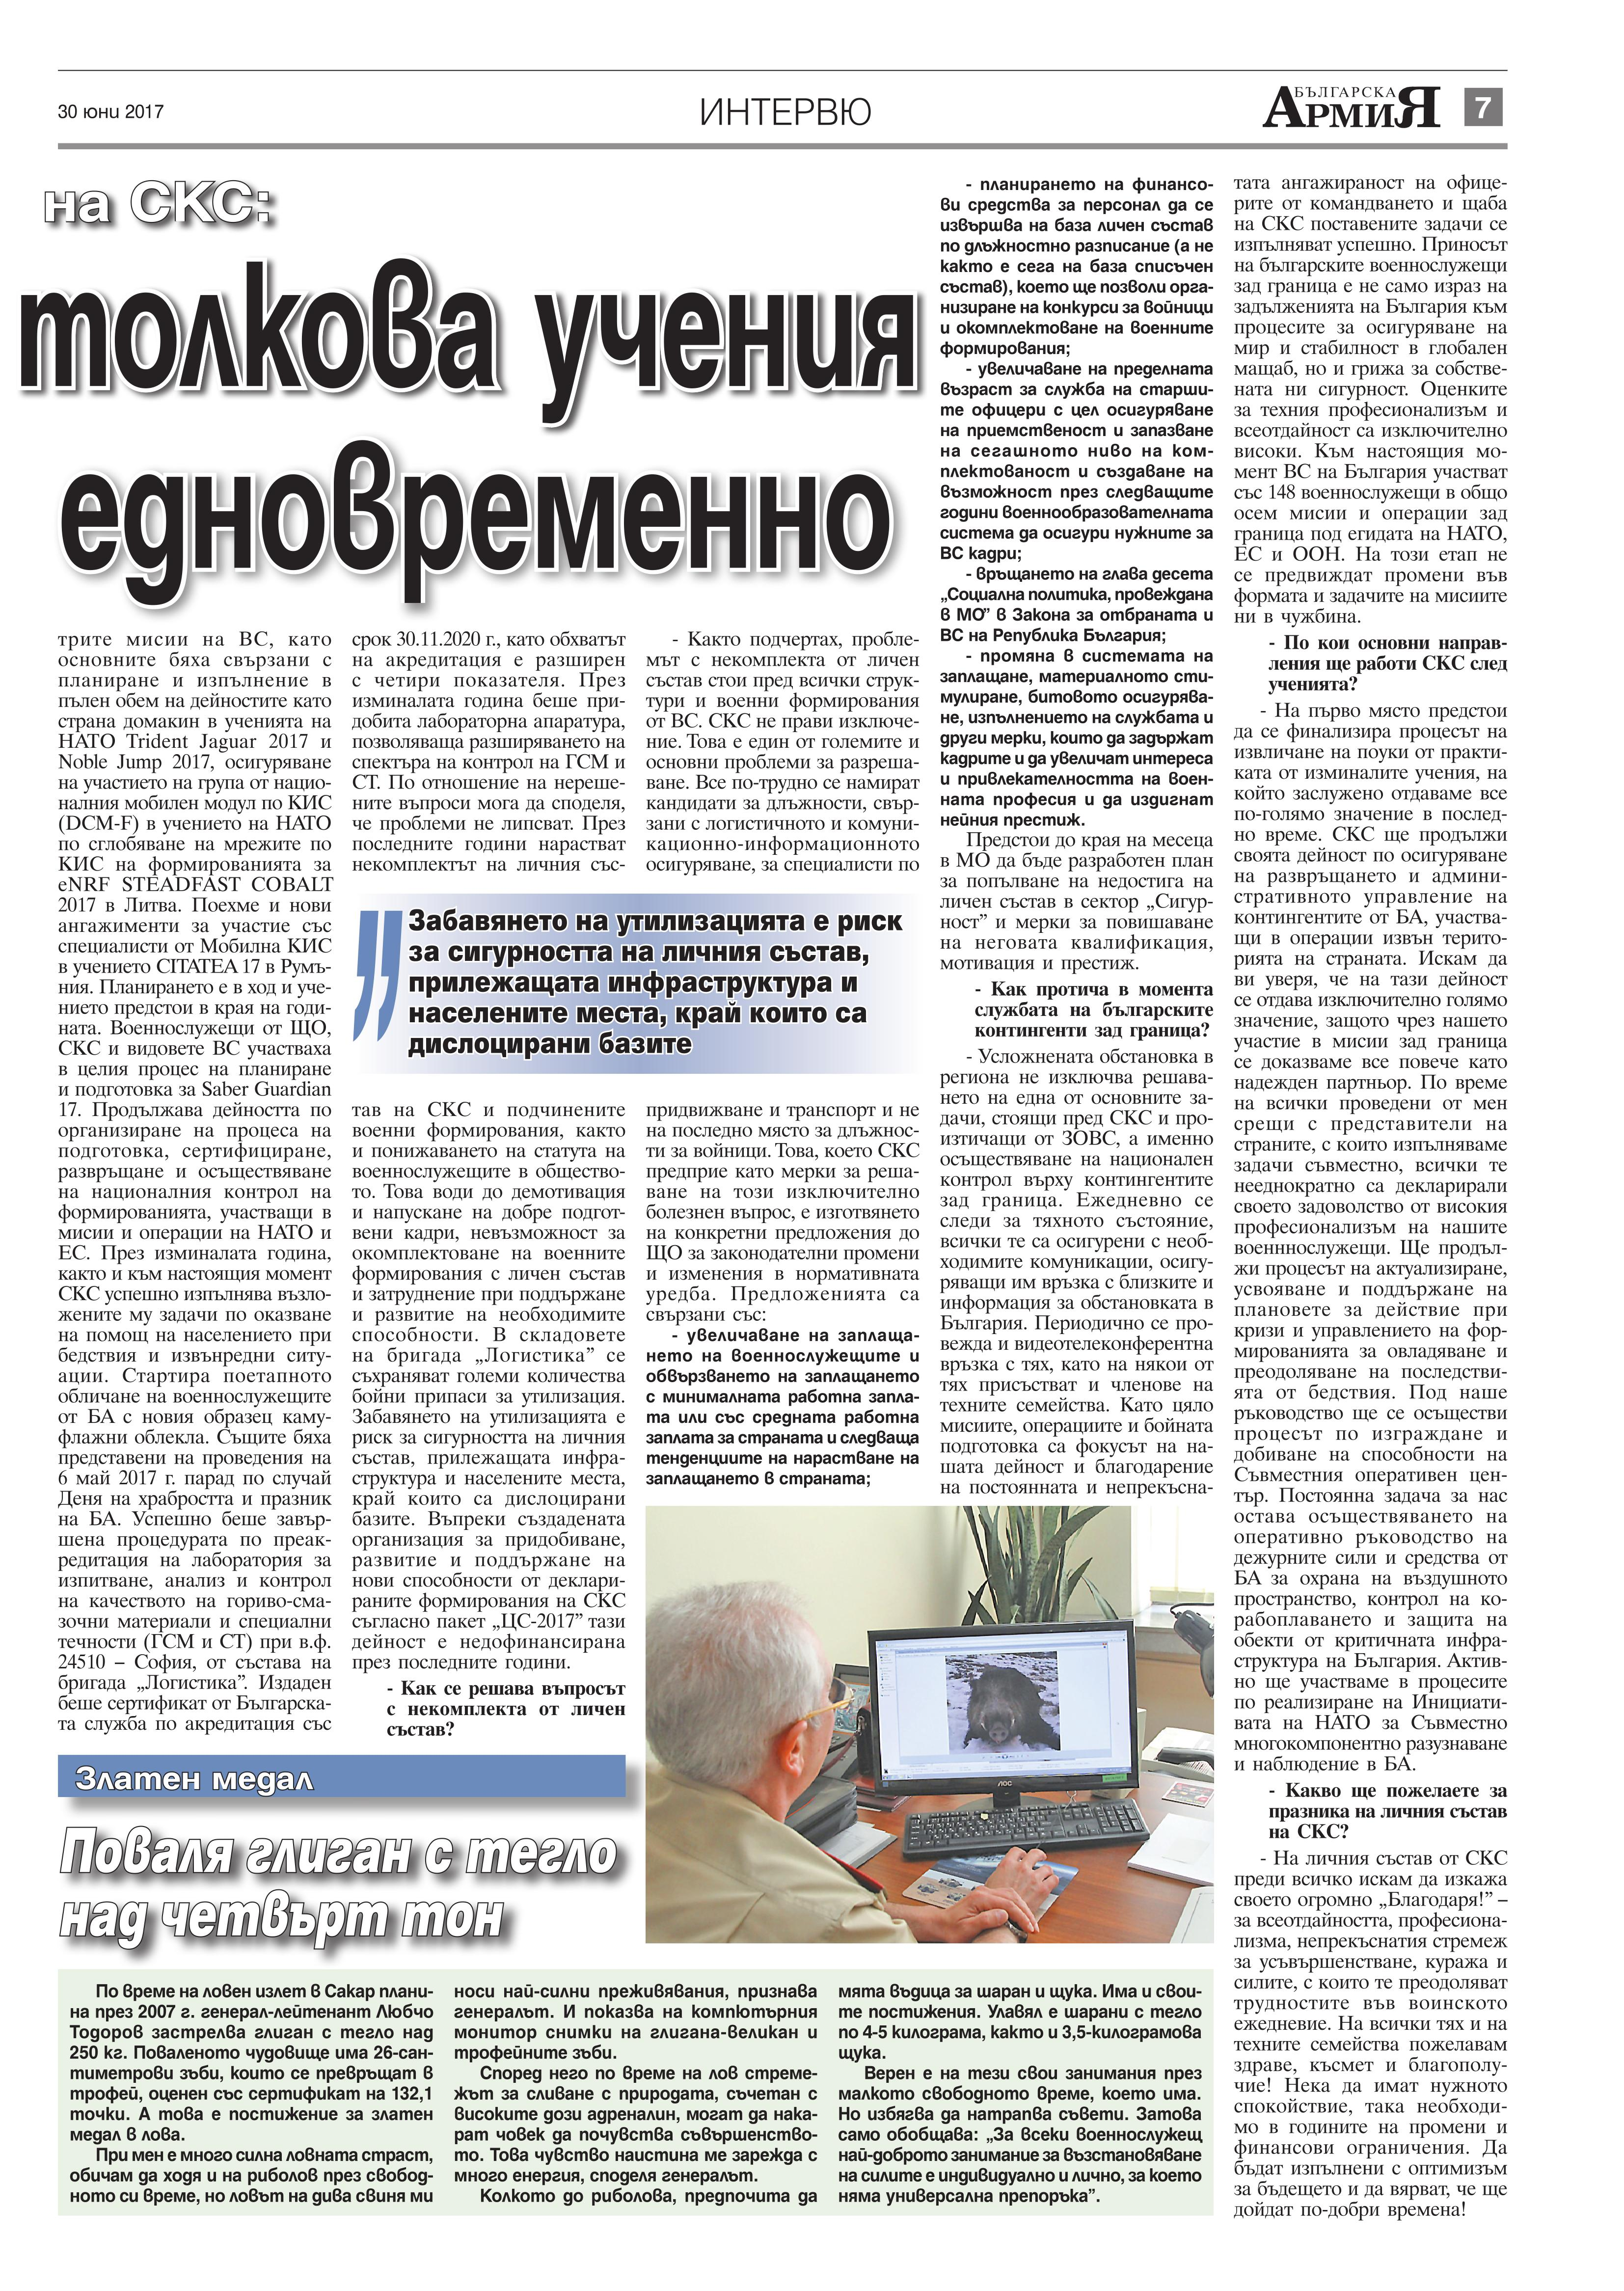 https://www.armymedia.bg/wp-content/uploads/2015/06/07.page1_-23.jpg